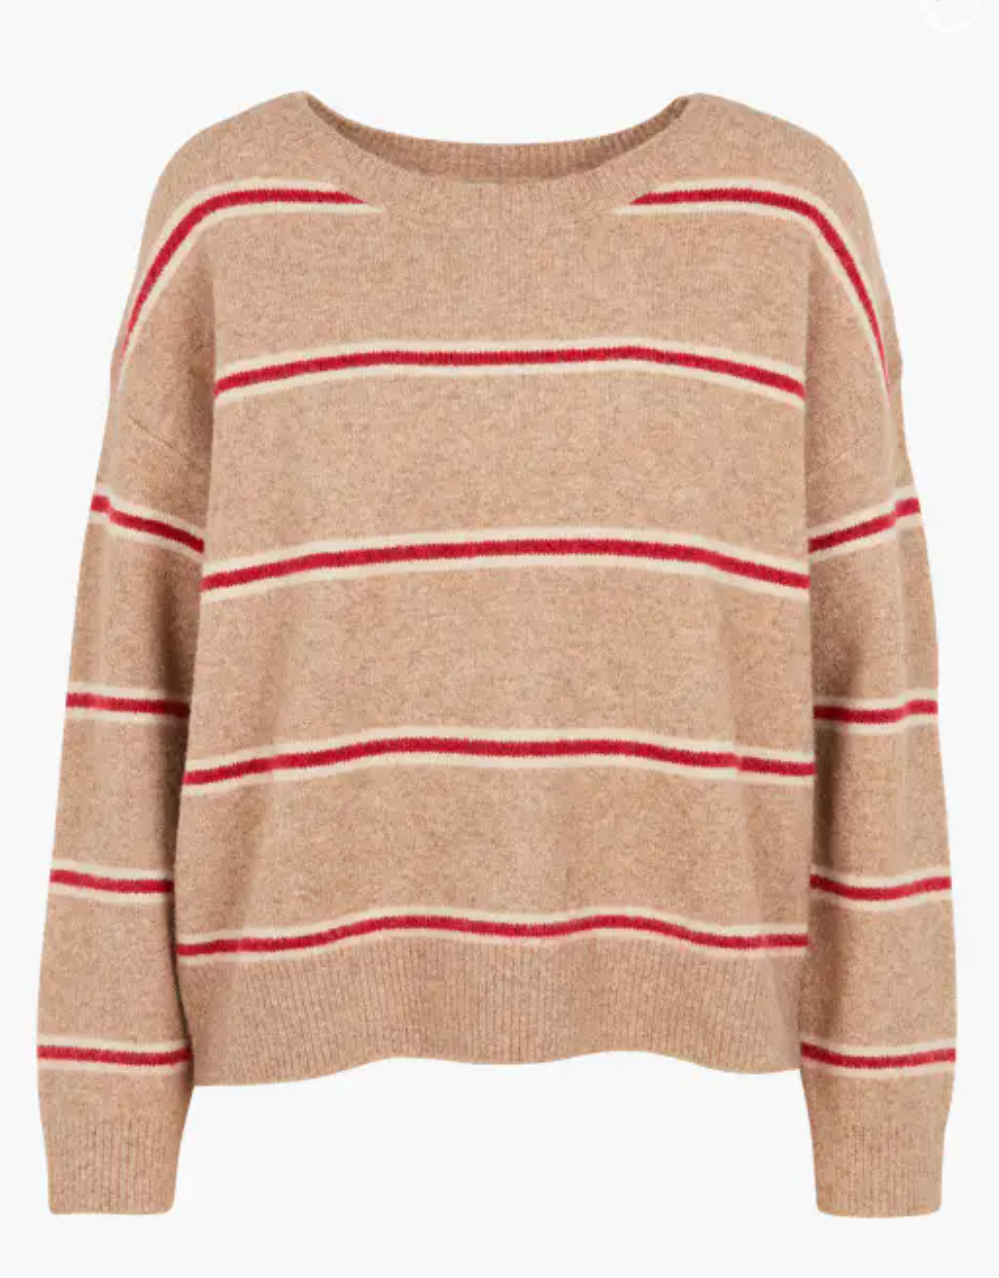 Suncoo Paddy Sweater